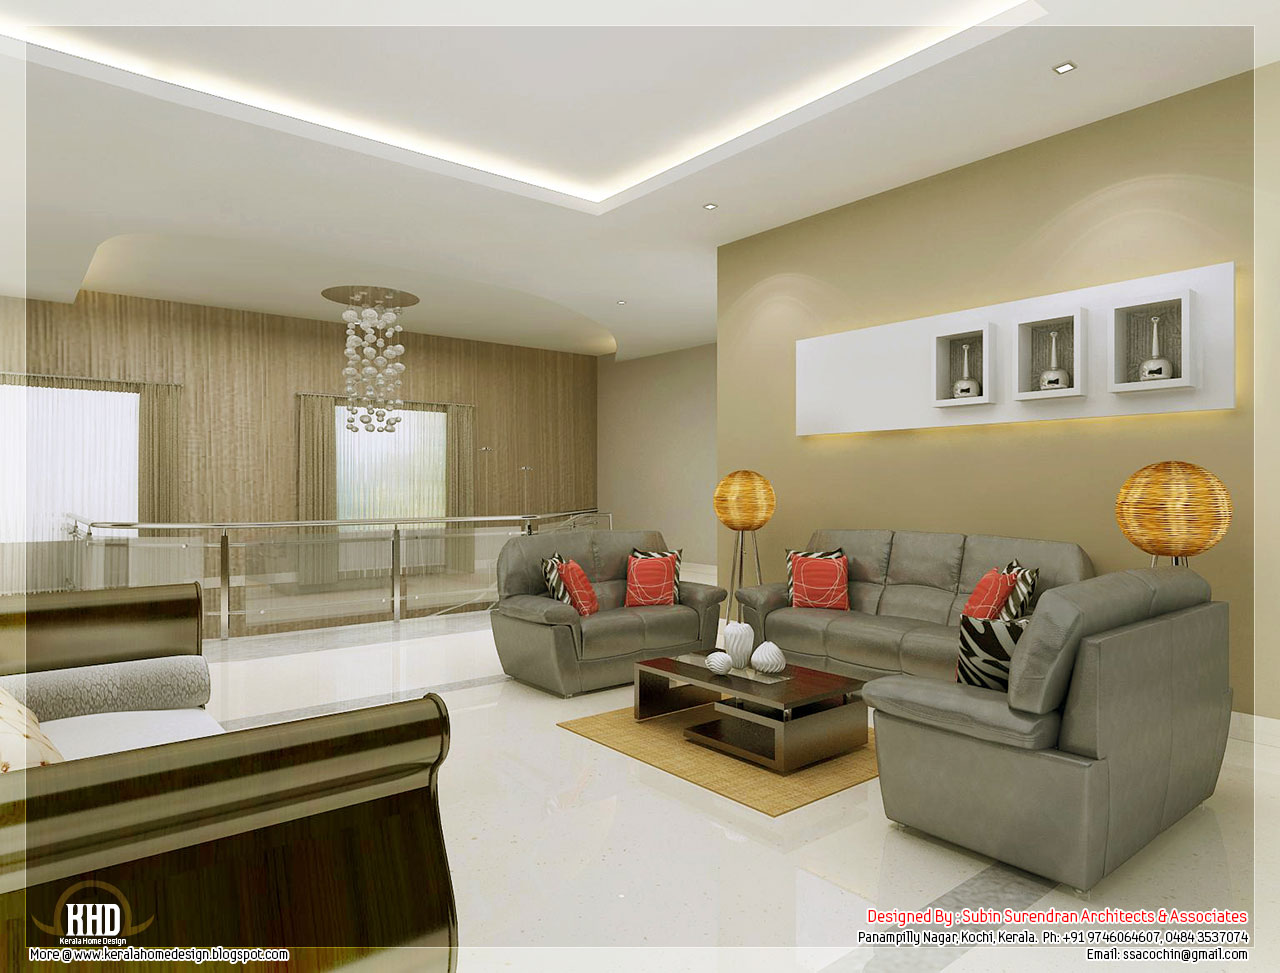 Awesome 3d Interior Renderings Kerala Home Design And: living room interior for small house